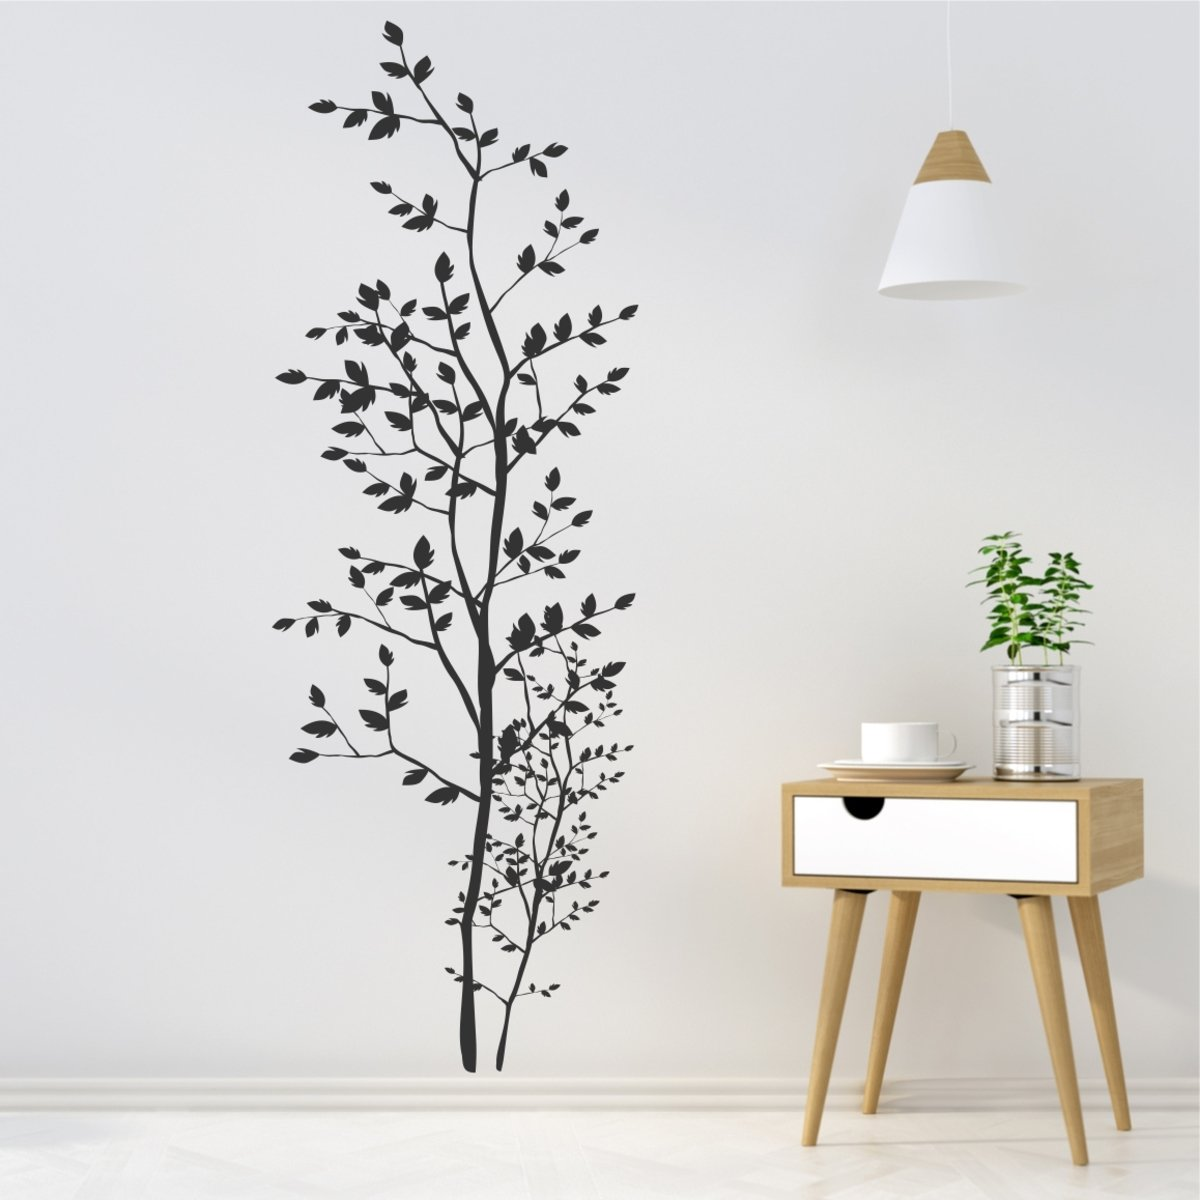 greenluup wandtattoo baum wandtattoo ast baum unbestimmt kaufen greenluup. Black Bedroom Furniture Sets. Home Design Ideas